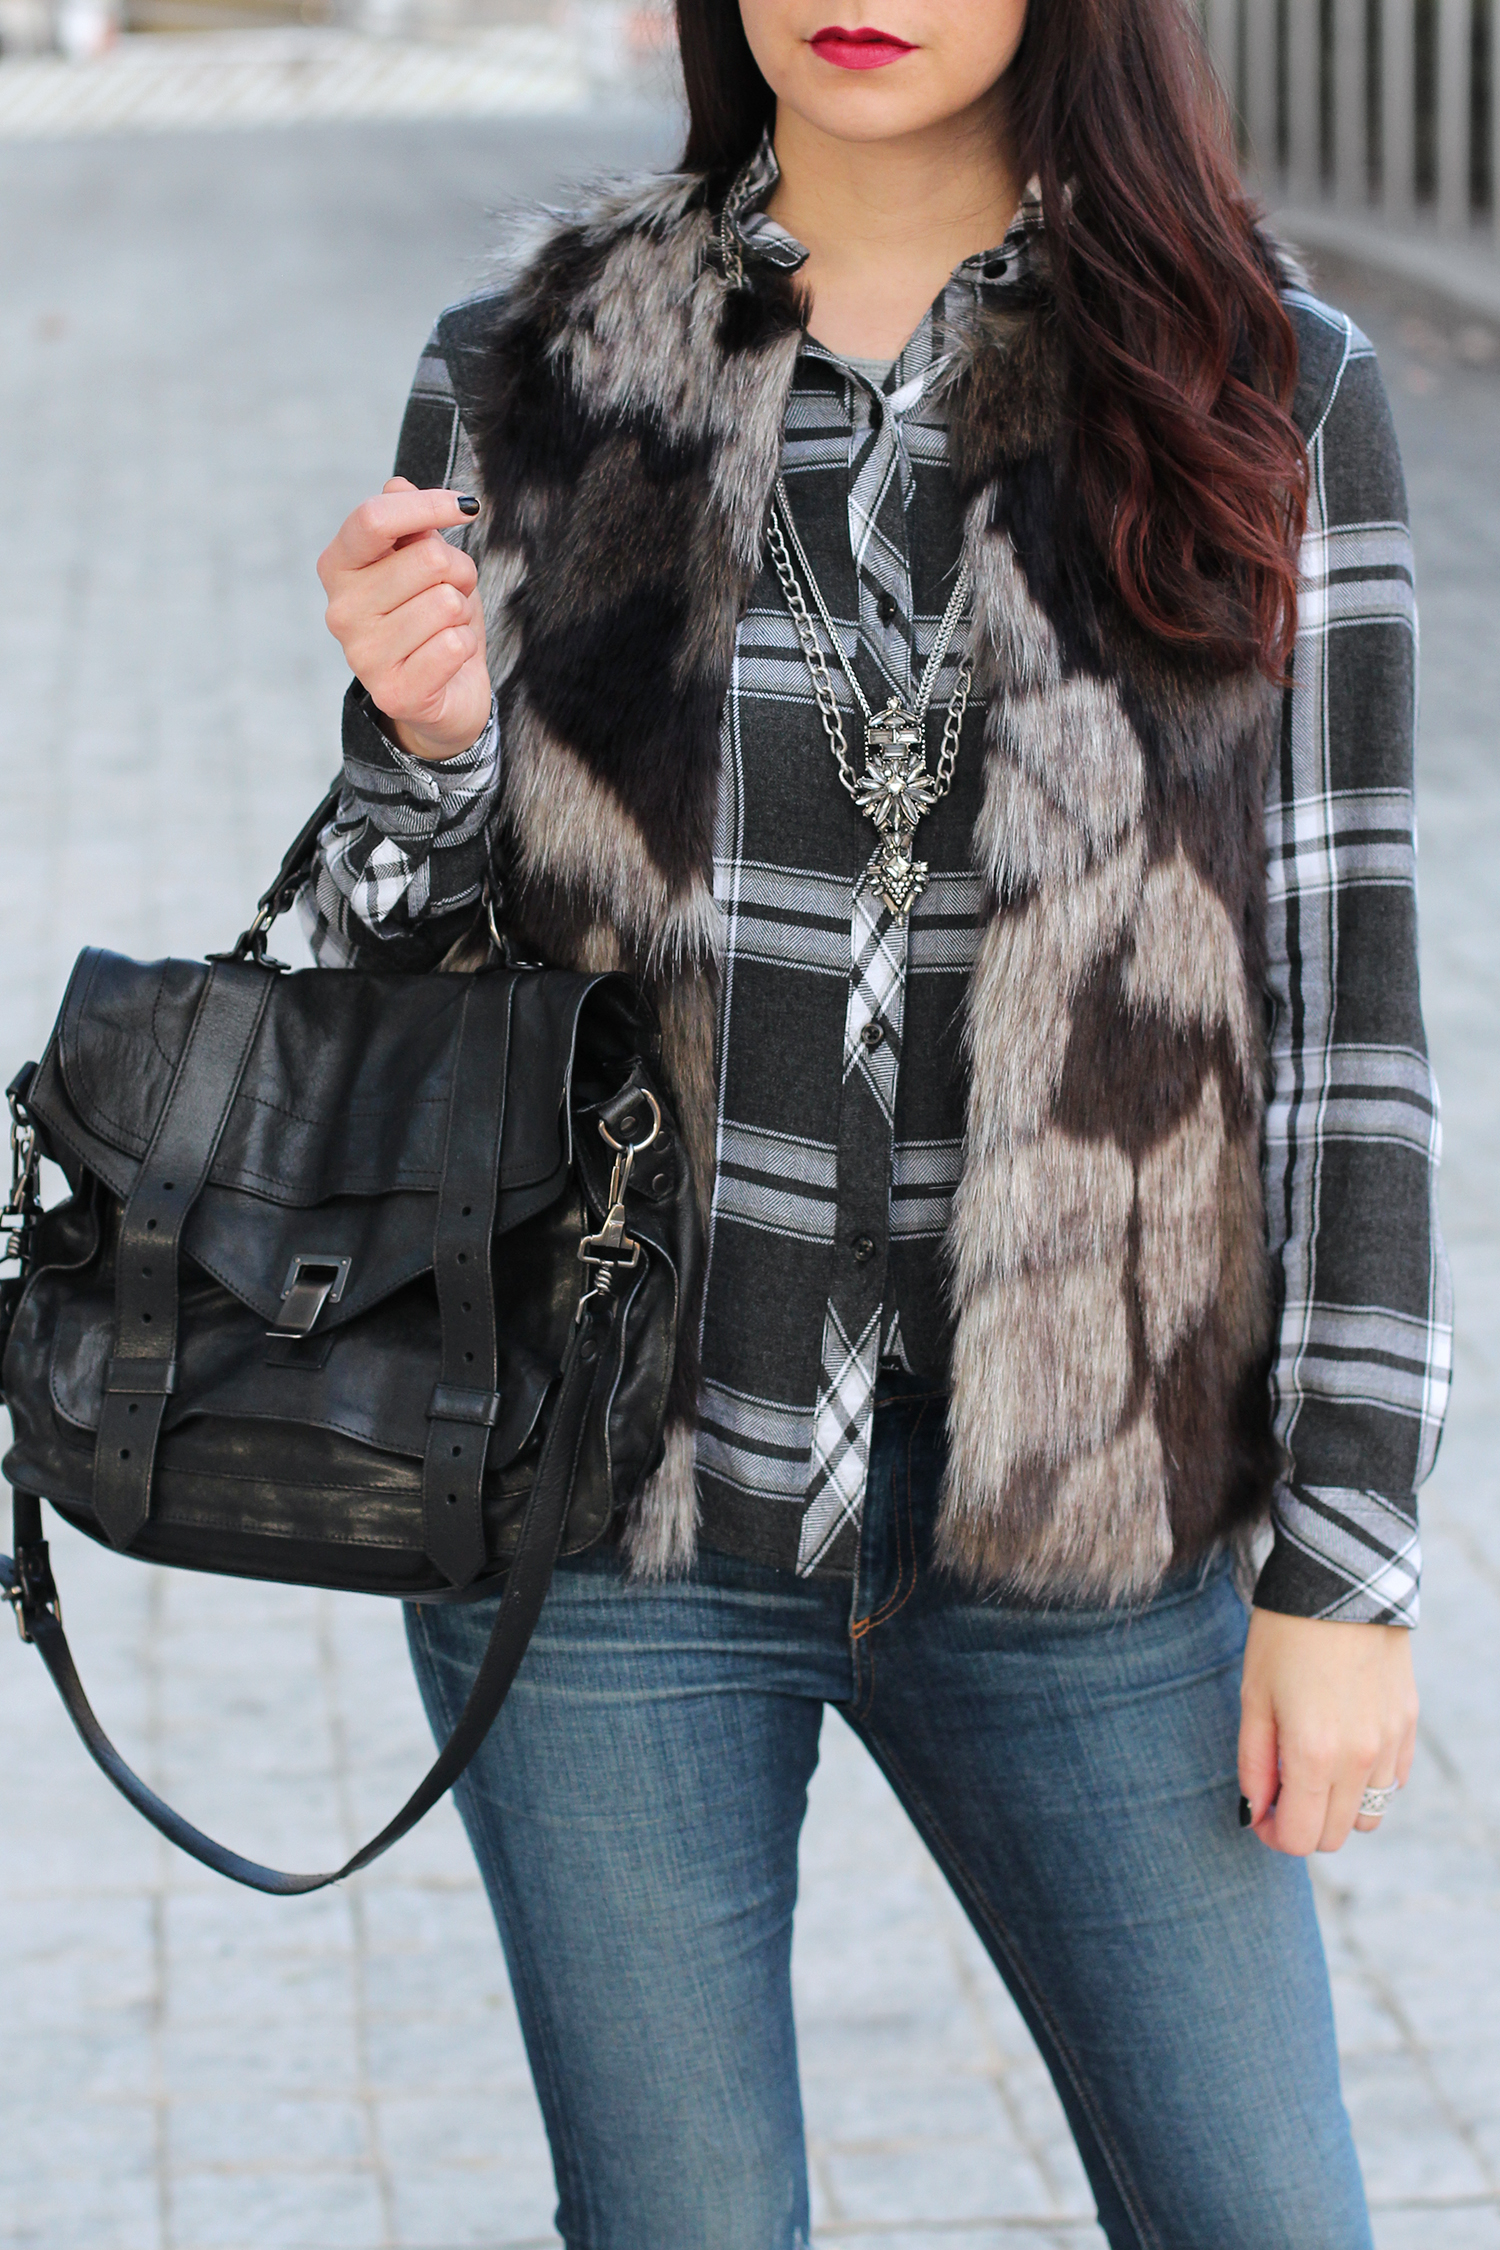 Tips for Styling a Fur Vest